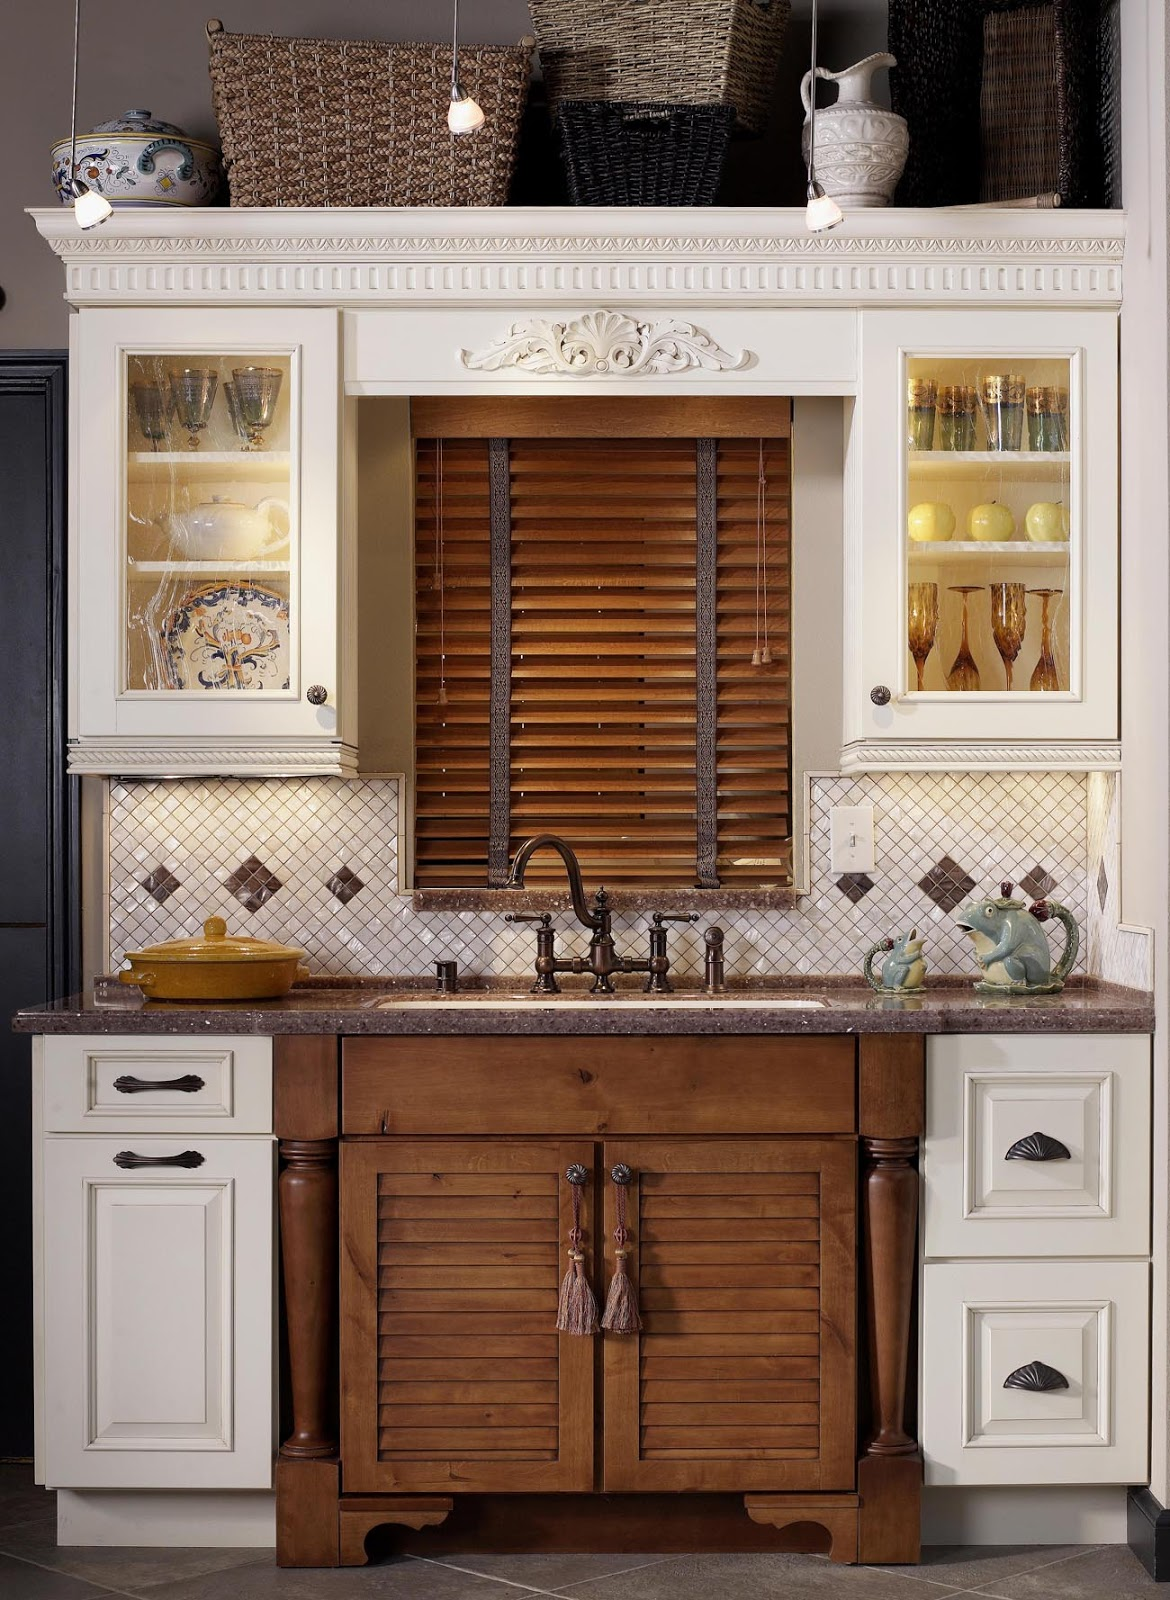 Kitchen and residential design you 39 re killing me for Kitchen cabinets houzz